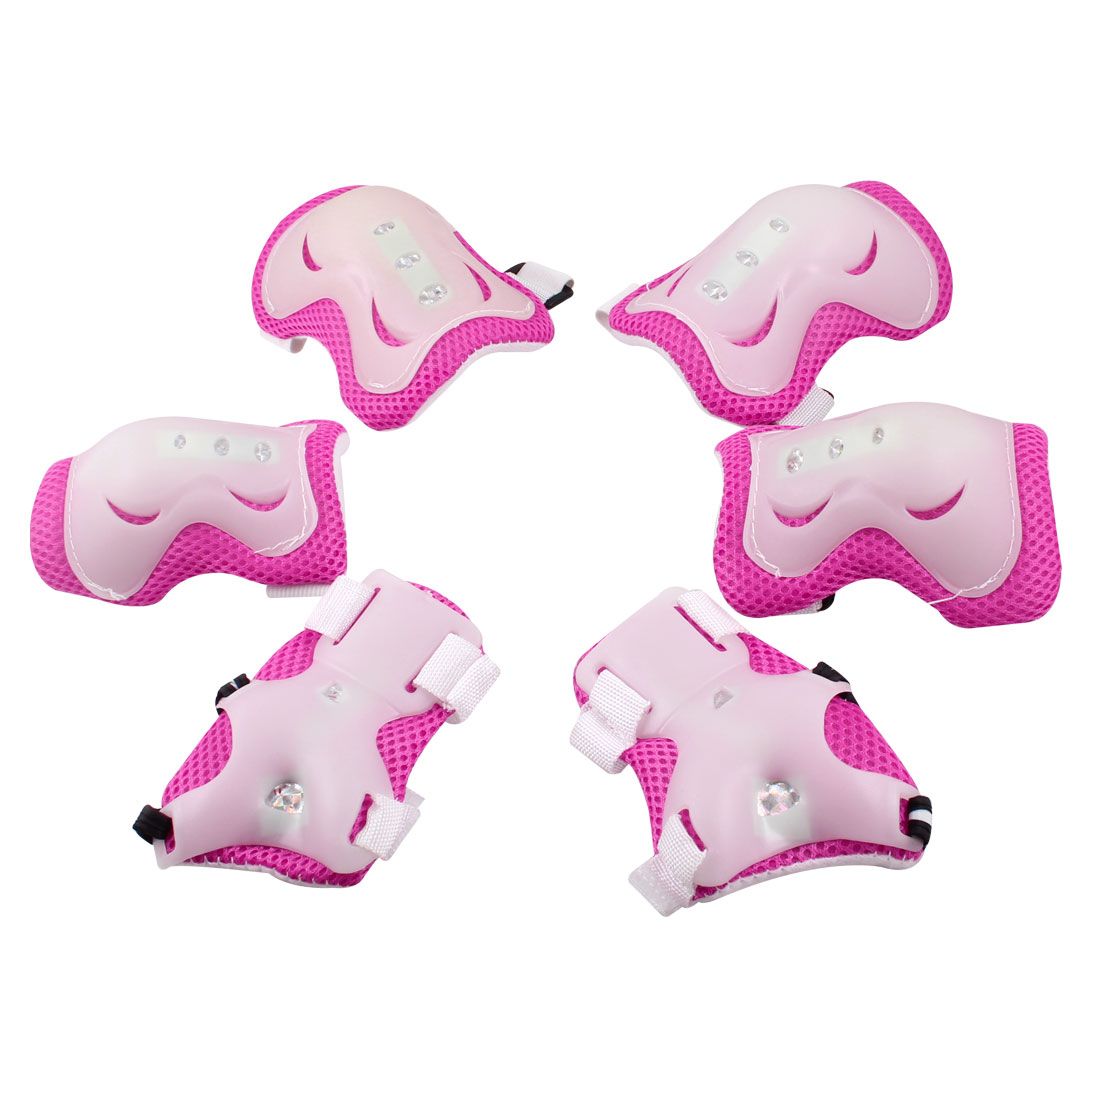 Children Skating Cycling Pink White Wrist Elbow Knee Pads Protectors Set 3 in 1